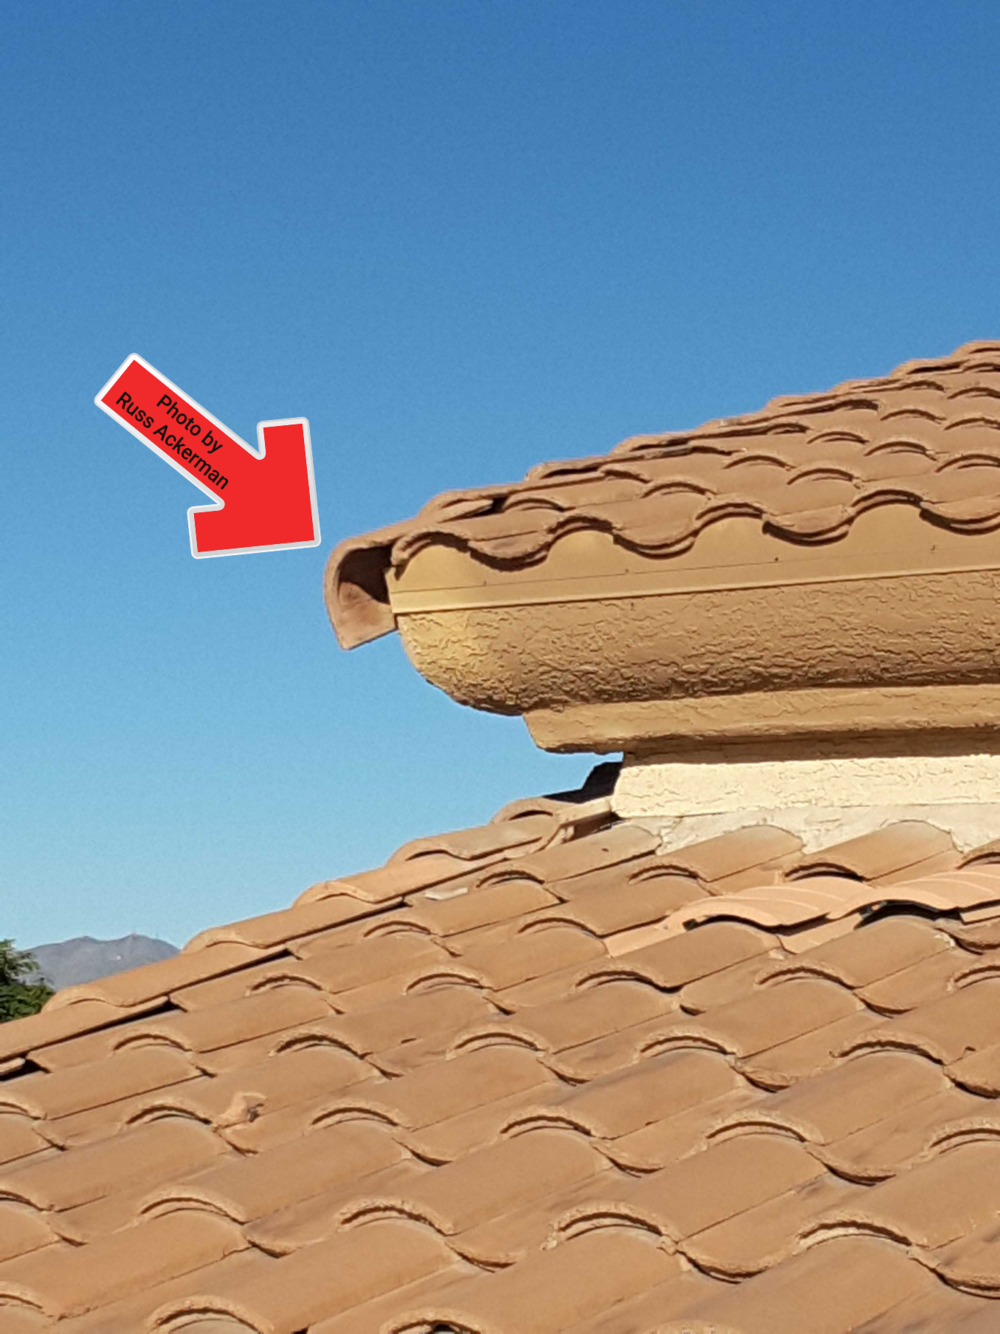 This rake edge roof tile is loose and about to fall. It's amazing how many homes I drive by that are missing rake tiles.